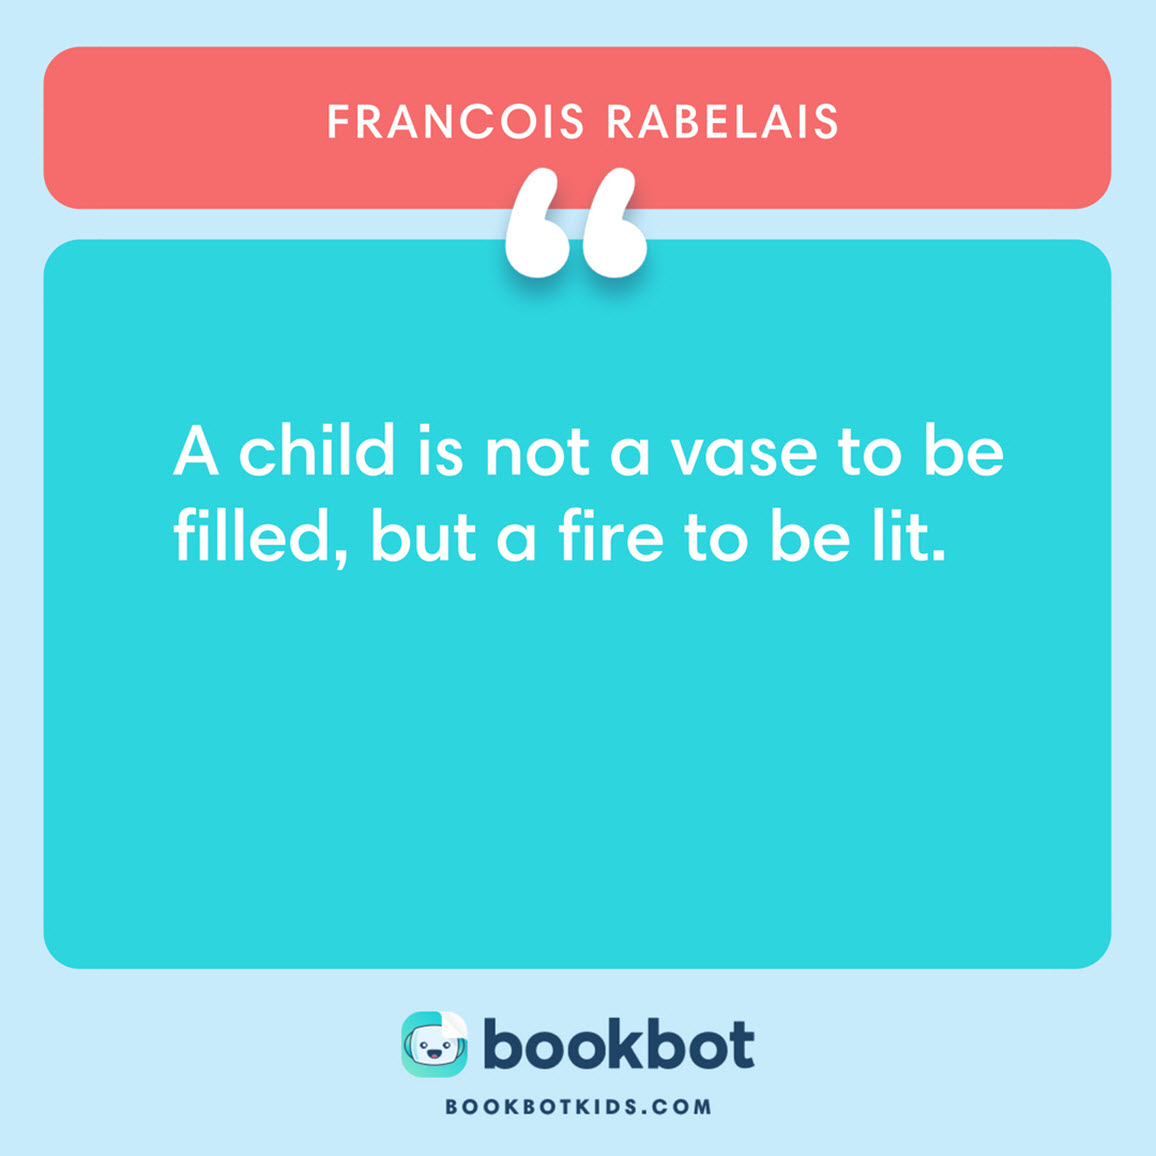 A child is not a vase to be filled, but a fire to be lit. – Francois Rabelais